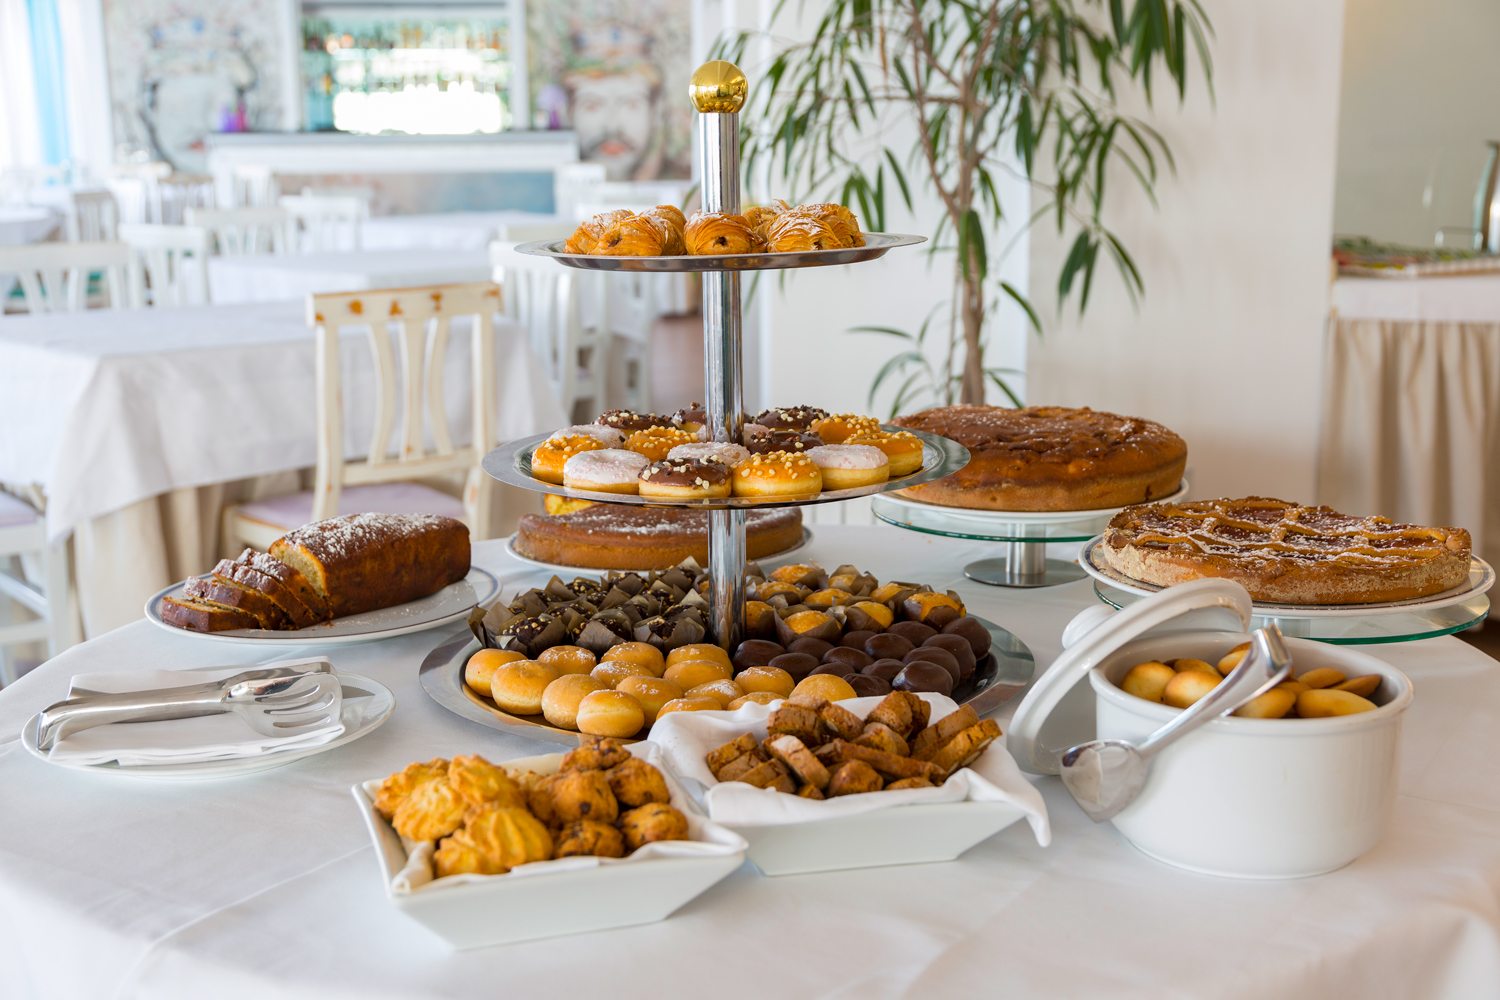 crystal-sea-hotel-marina-agro-taormina-Holiday-Sicily-breakfast-confectionery-buffet-italian-food